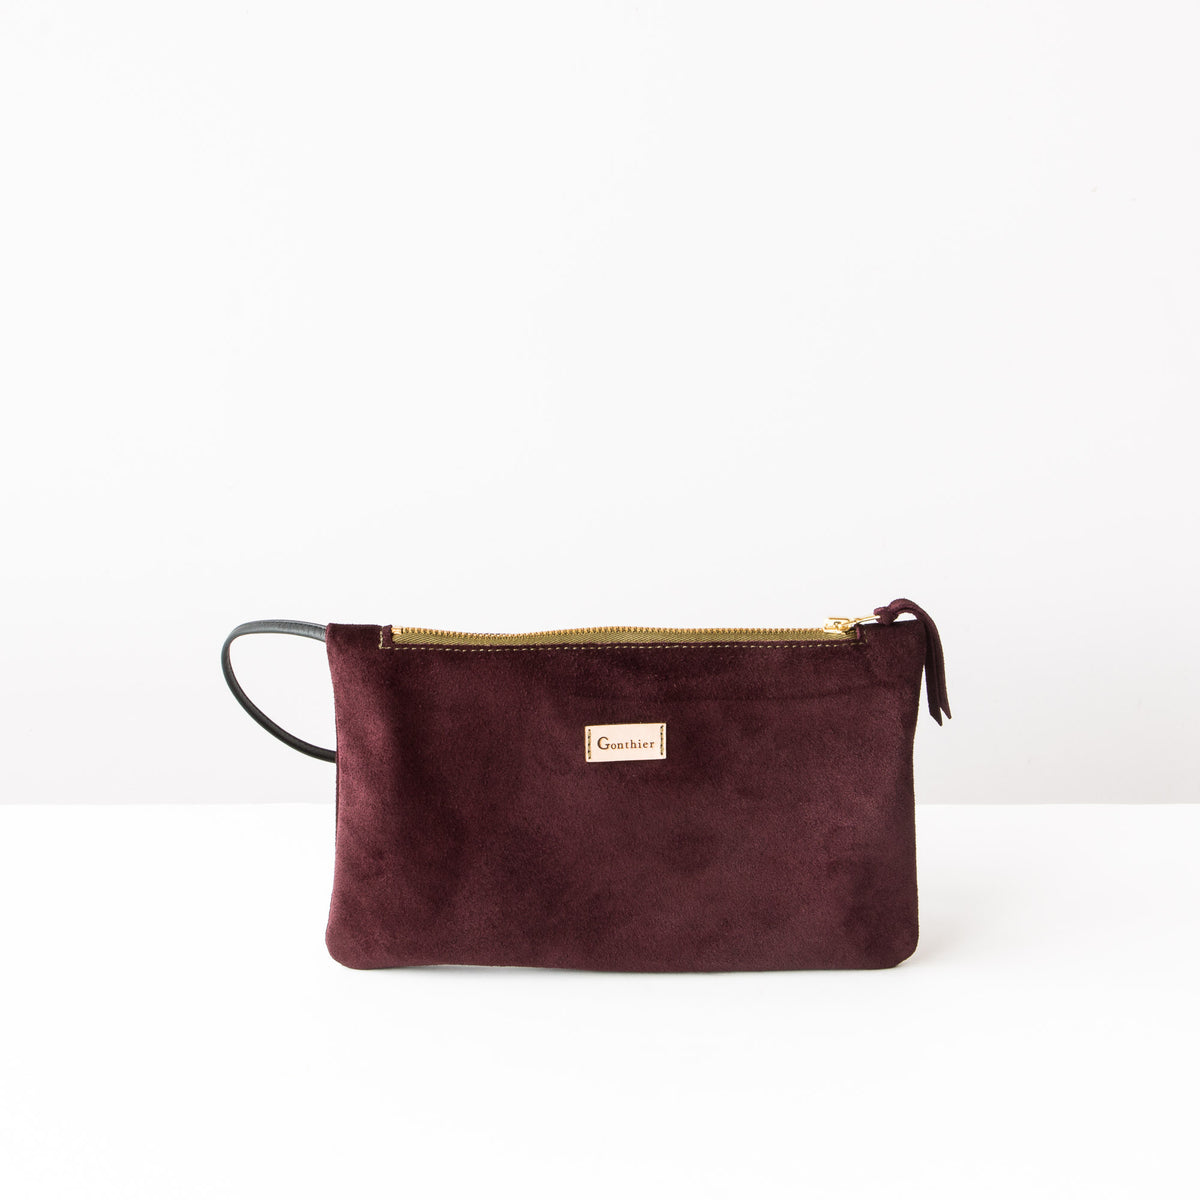 Front View - Bordeaux & Khaki - Handmade Small Shoulder Bag in Suede Calfskin - Sold by Chic & Basta